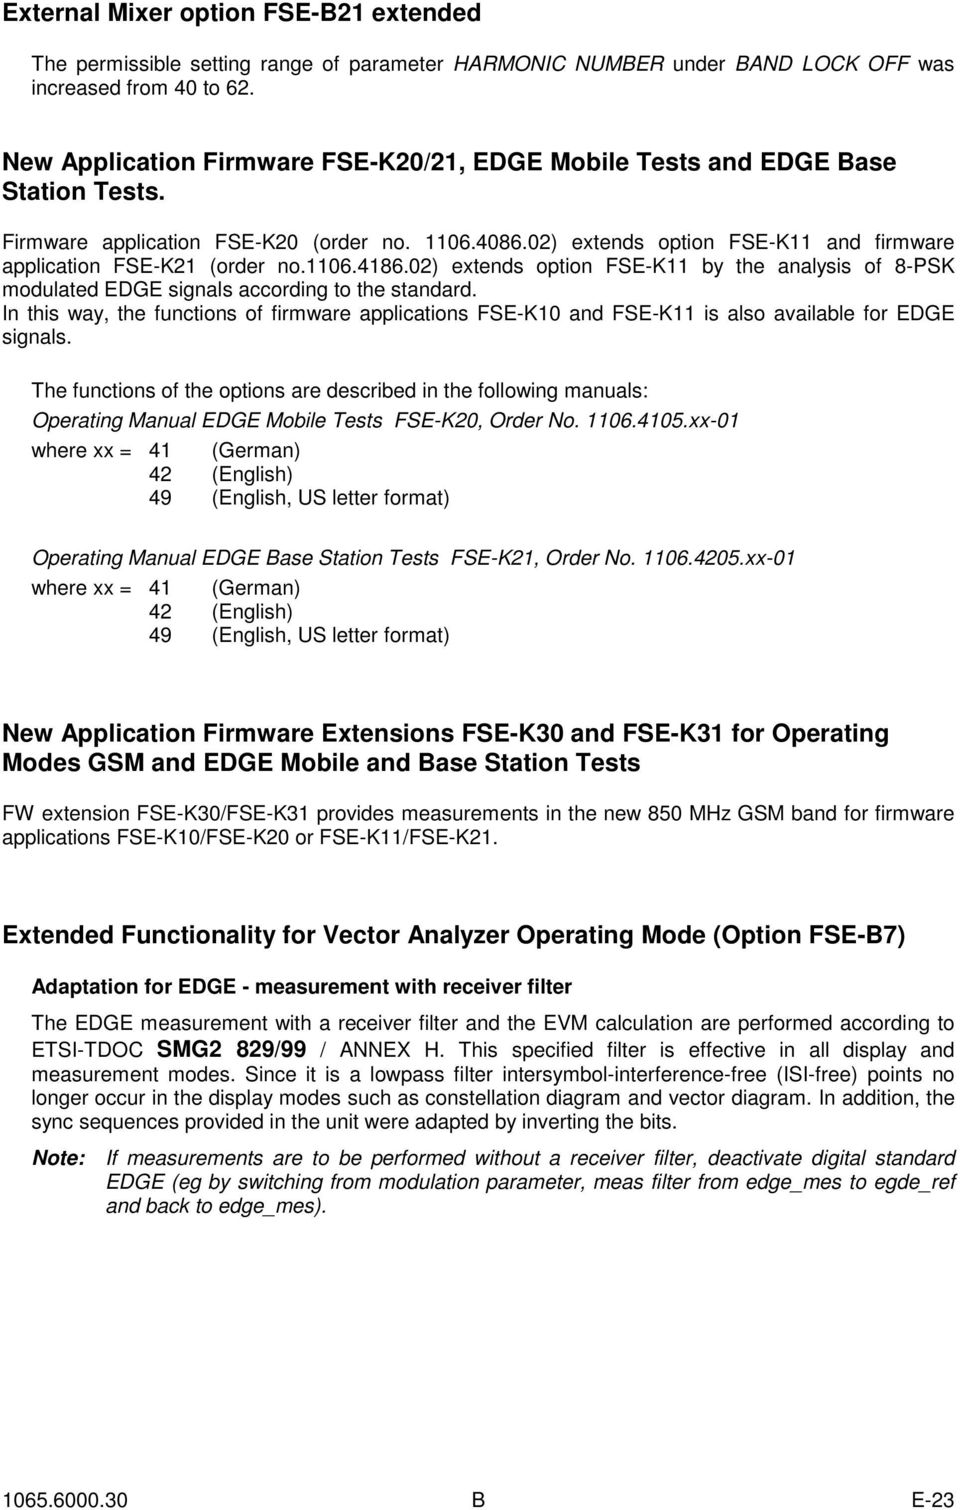 02) extends option FSE-K11 and firmware application FSE-K21 (order no.1106.4186.02) extends option FSE-K11 by the analysis of 8-PSK modulated EDGE signals according to the standard.